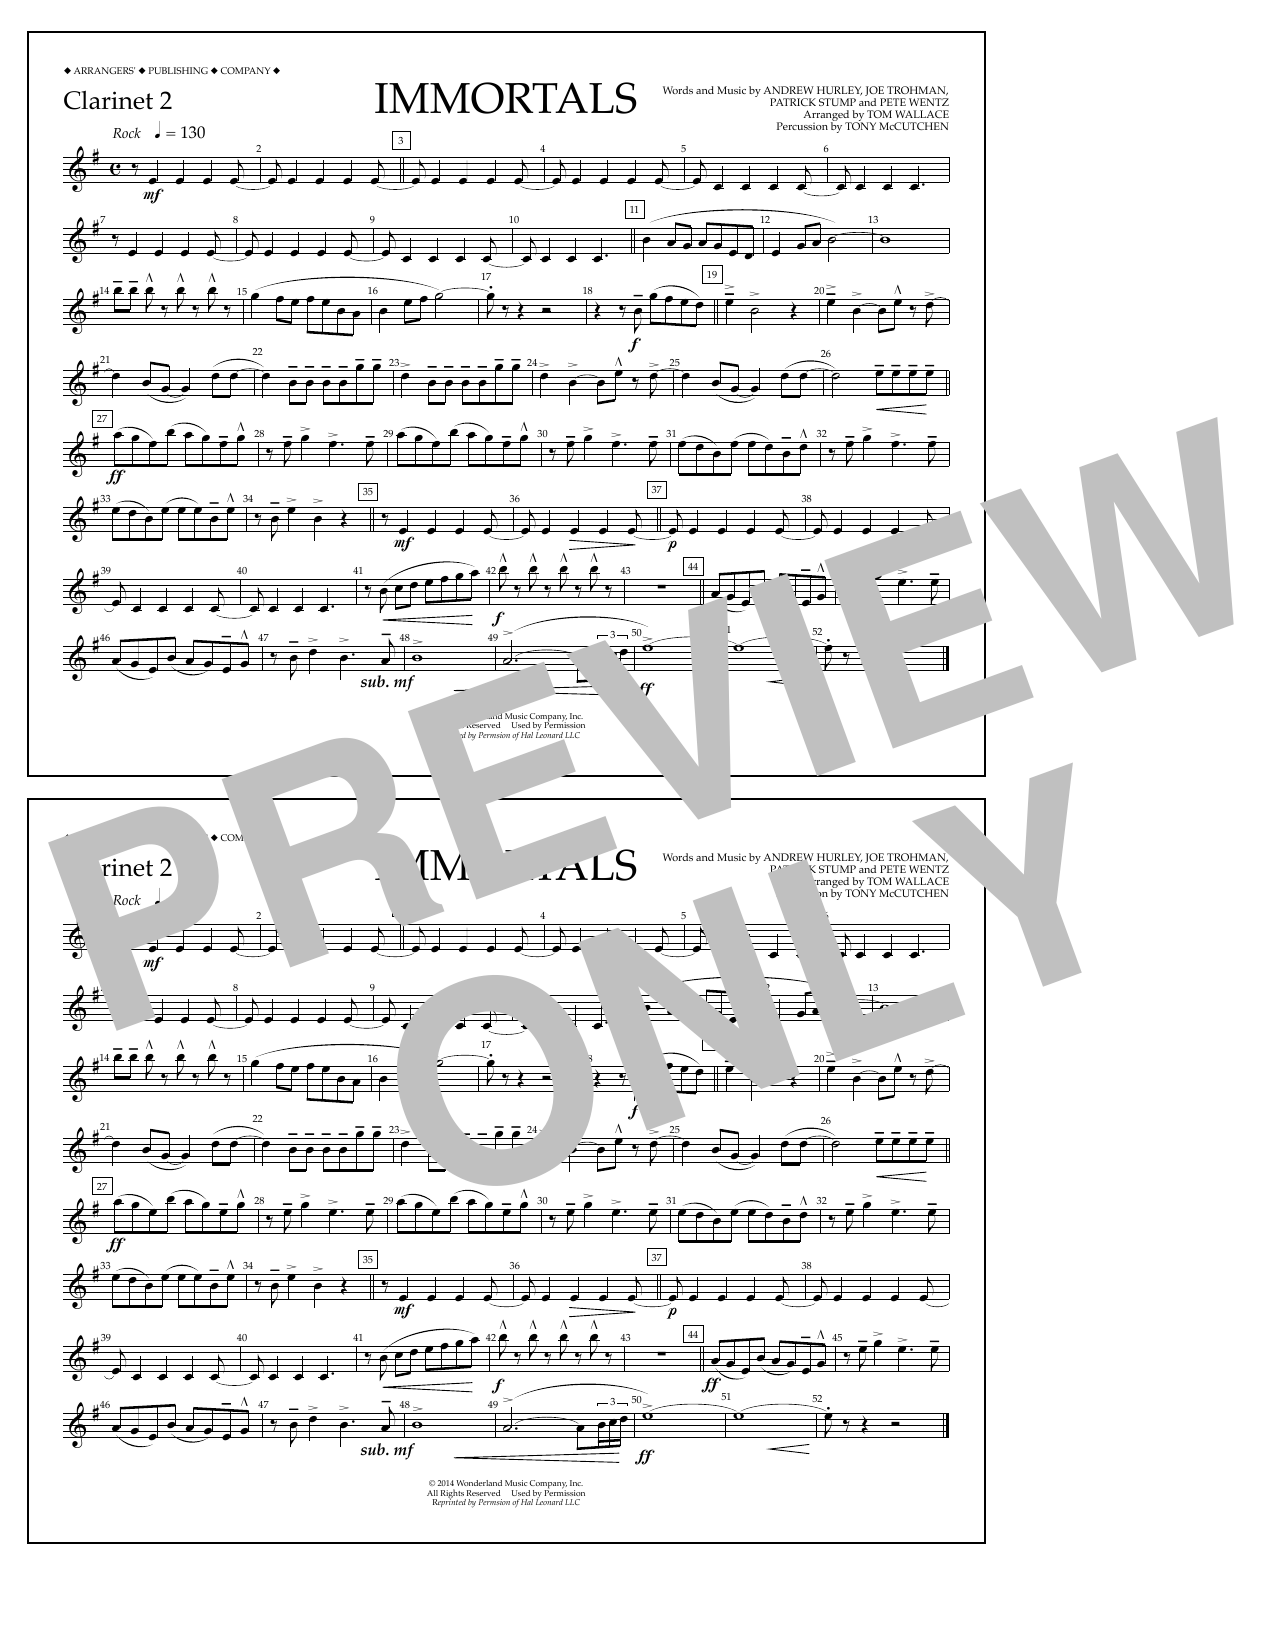 Fall Out Boy Immortals (from Big Hero 6) (arr. Tom Wallace) - Clarinet 2 sheet music notes and chords. Download Printable PDF.